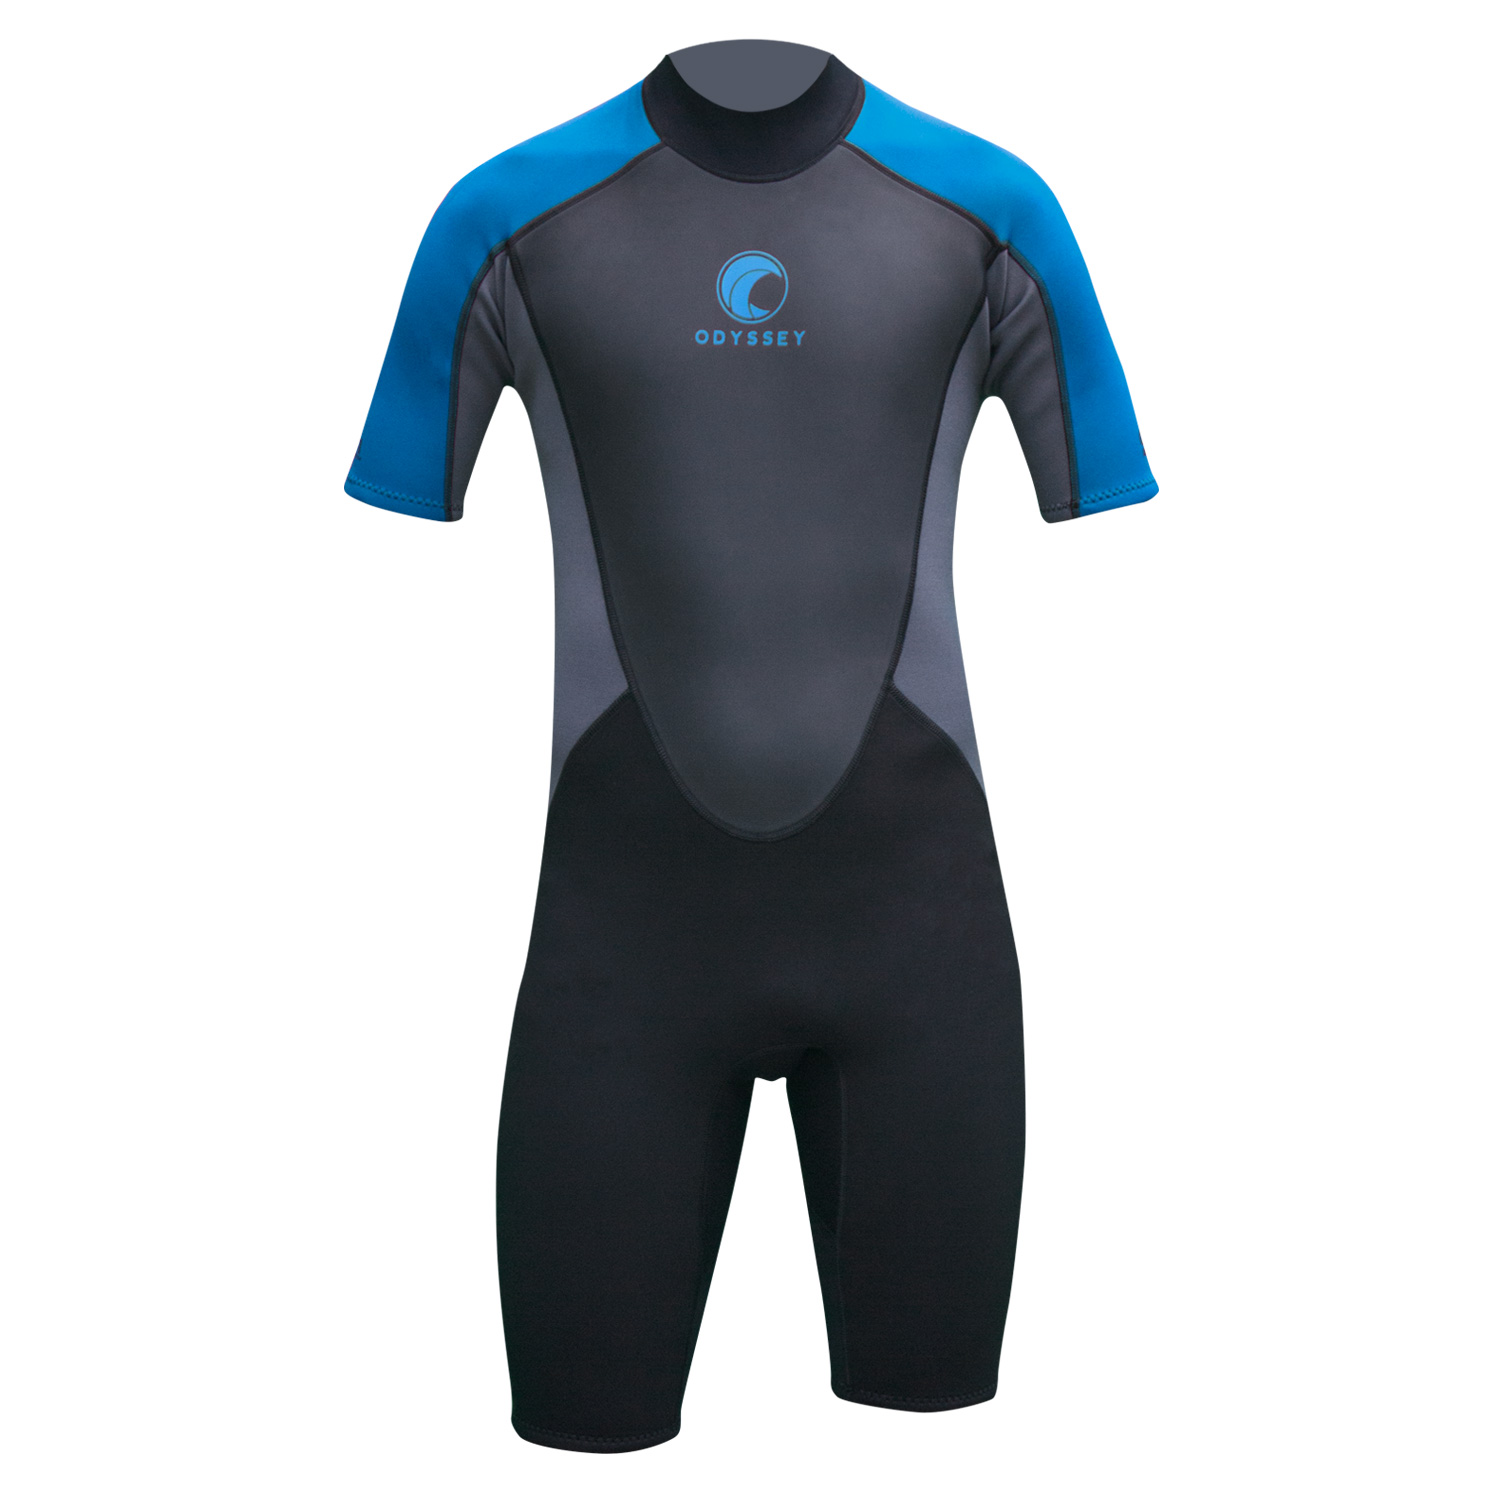 Odyssey-Core-3-2mm-Mens-Shorty-Wetsuit-Surf-Swim-Kayak-Shortie-Wet-Suit-S-XXL thumbnail 6